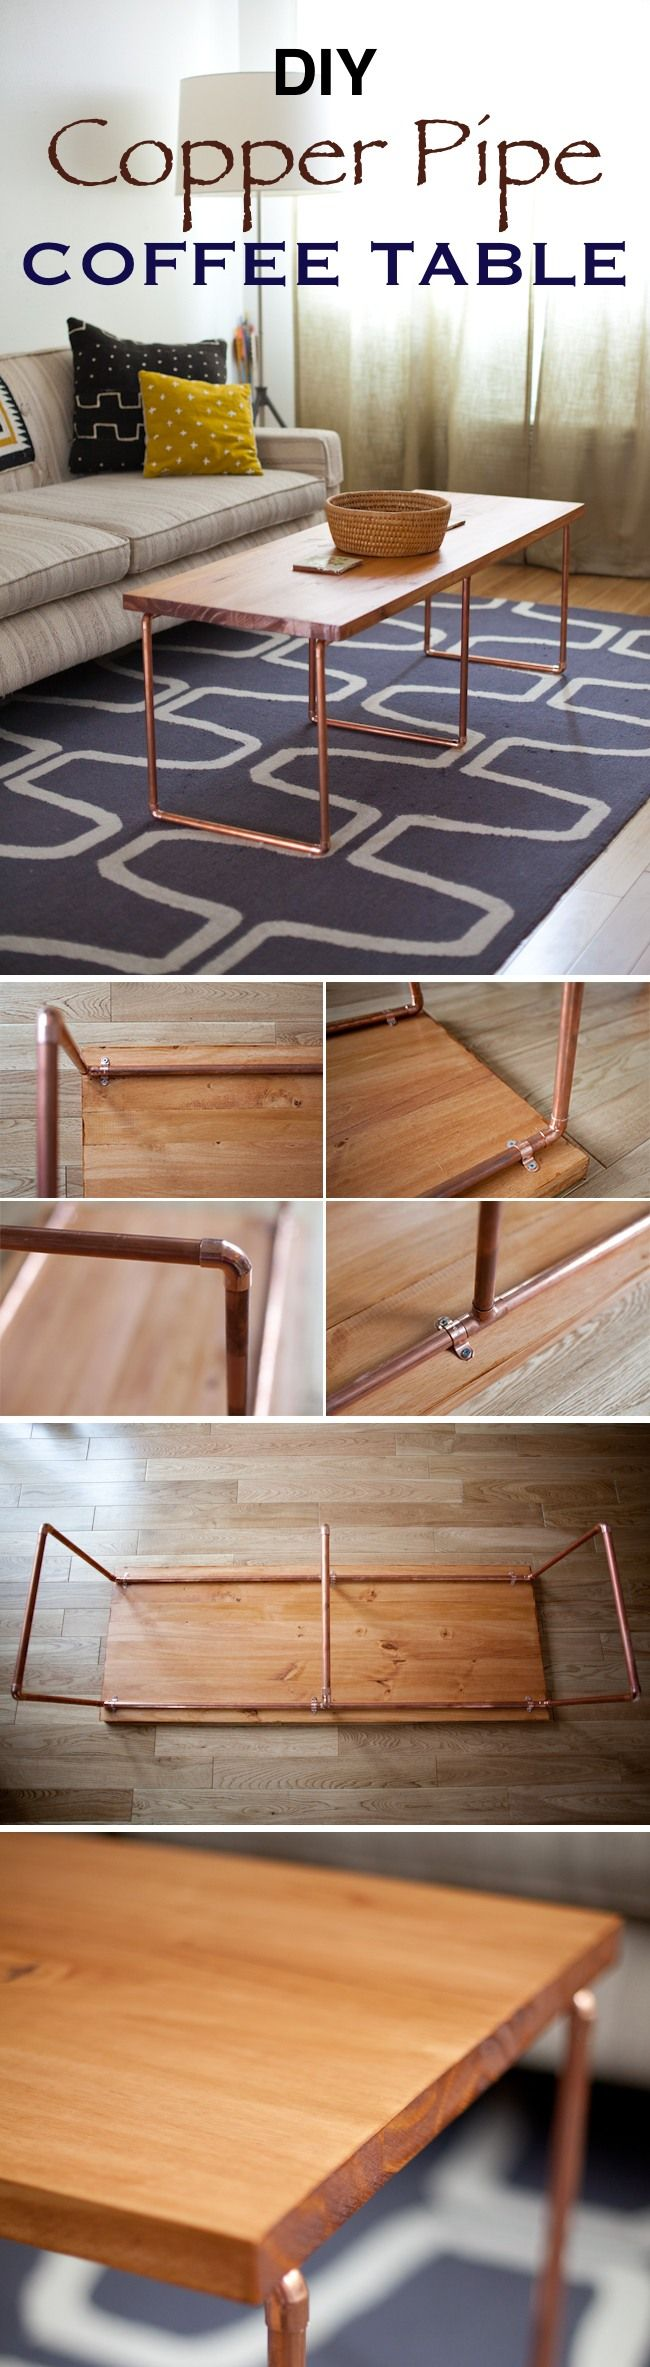 Industrial Style Coffee Tables 17 Best Ideas About Industrial Coffee Tables On Pinterest